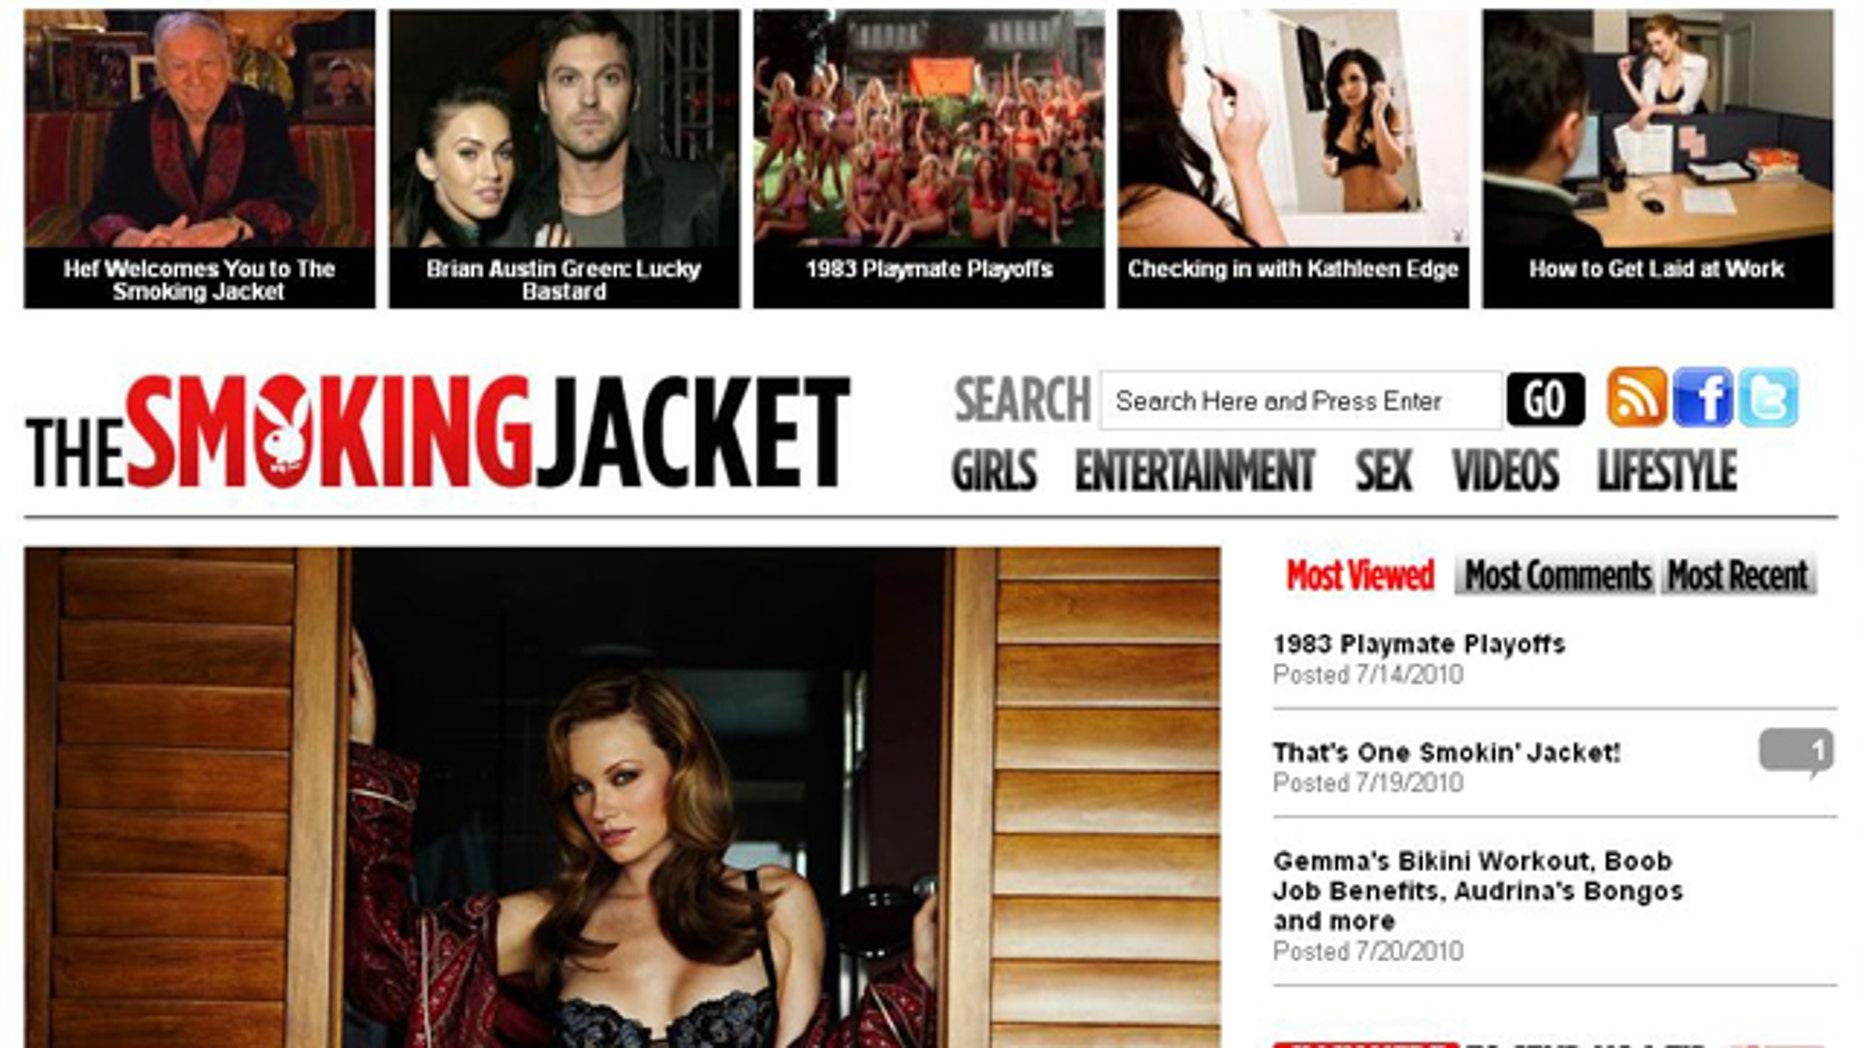 Playboy has launched a safe-for-work website called TheSmokingJacket.com, which will contain none of the nudity that Playboy is known for.